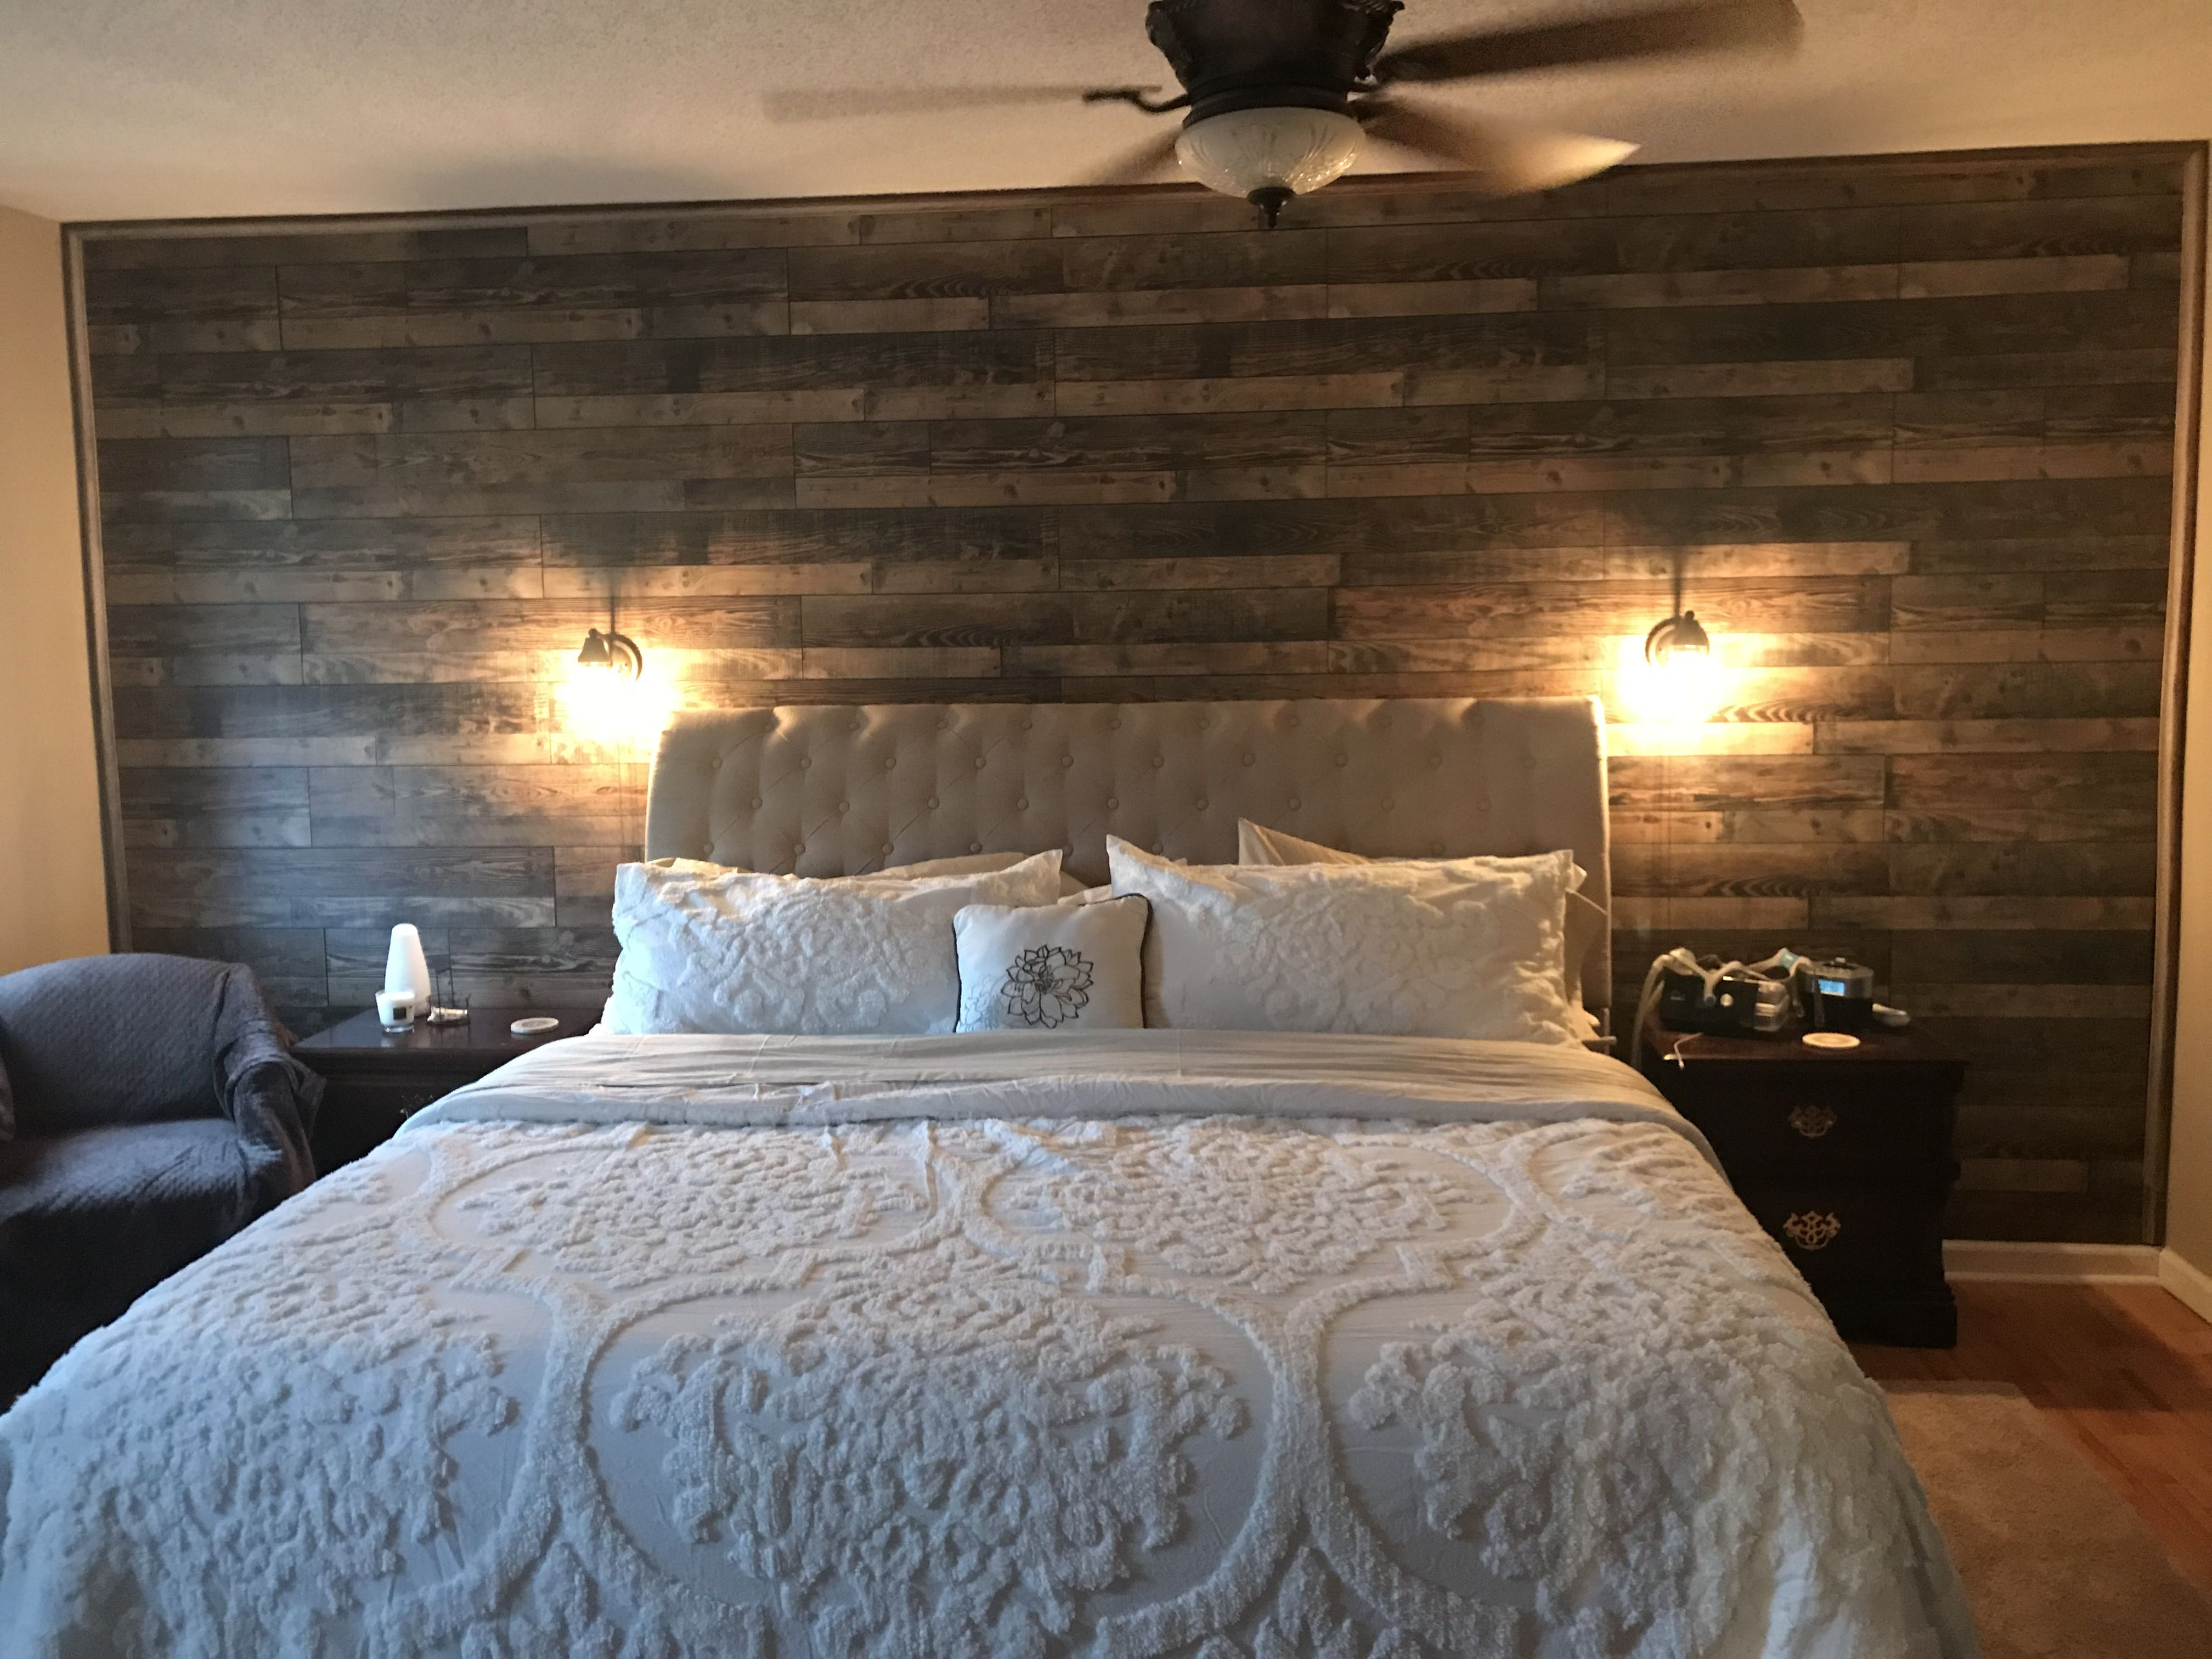 Master Bedroom Accent Wall of Reclaimed Wood. | Bed and ...